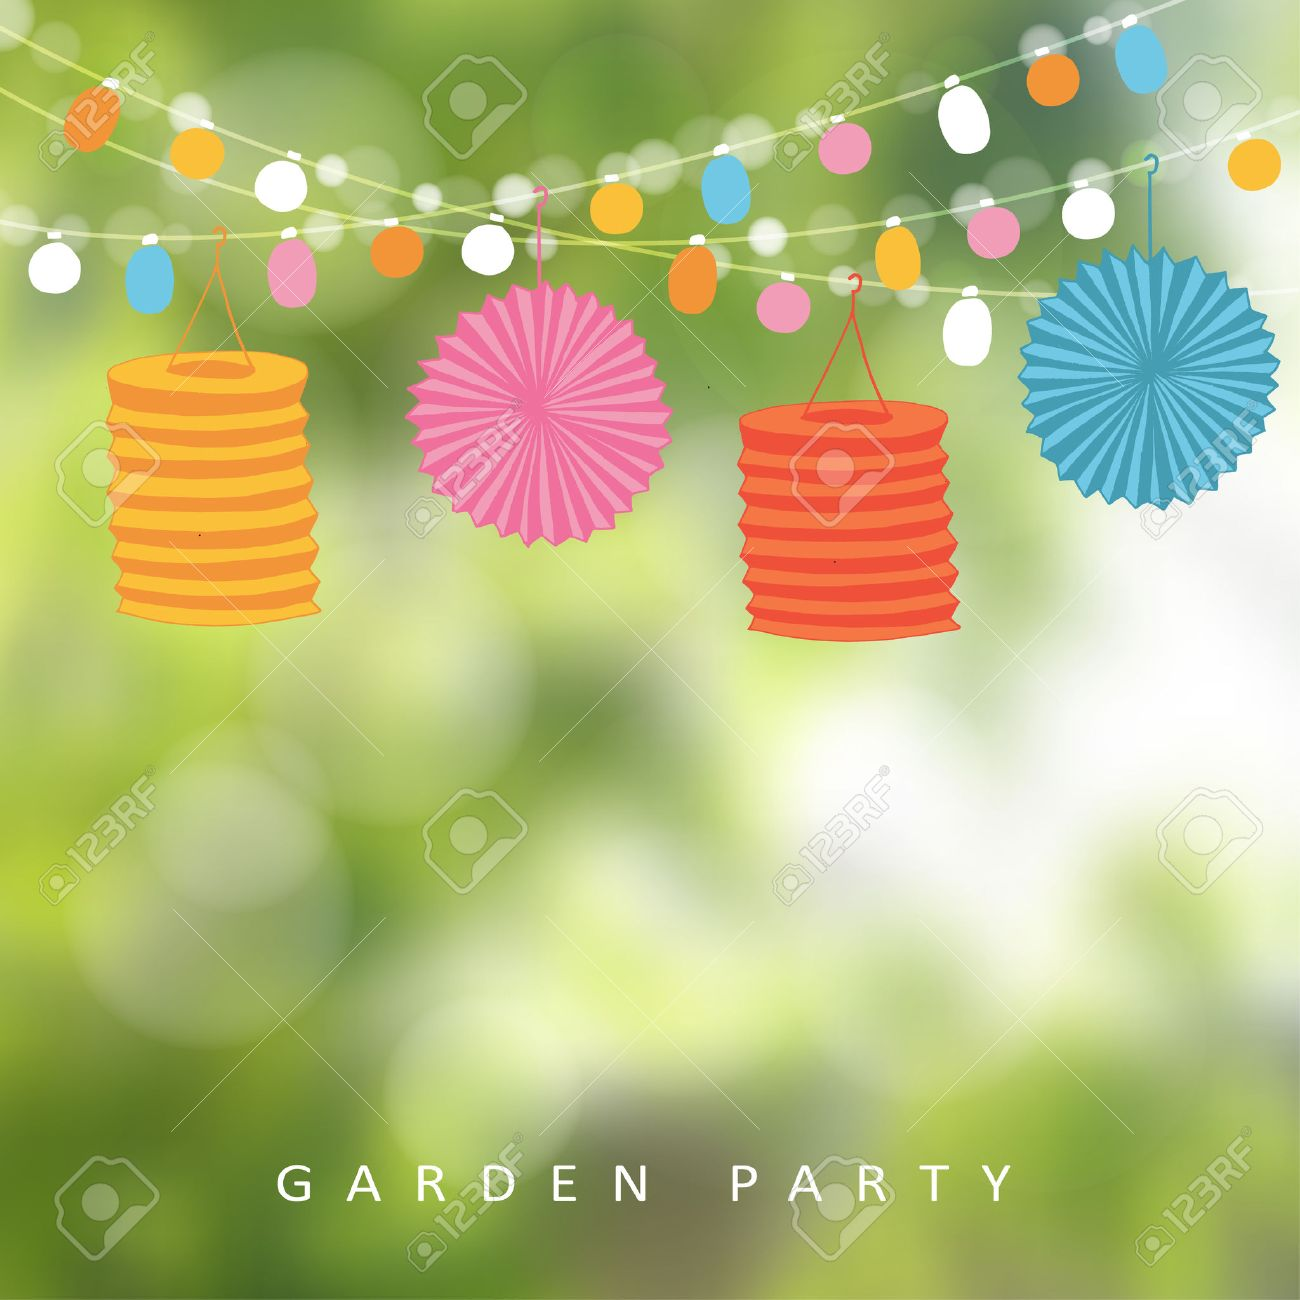 Birthday garden party or Brazilian june party, illustration with string of lights, paper lanterns and blurred background - 55950421